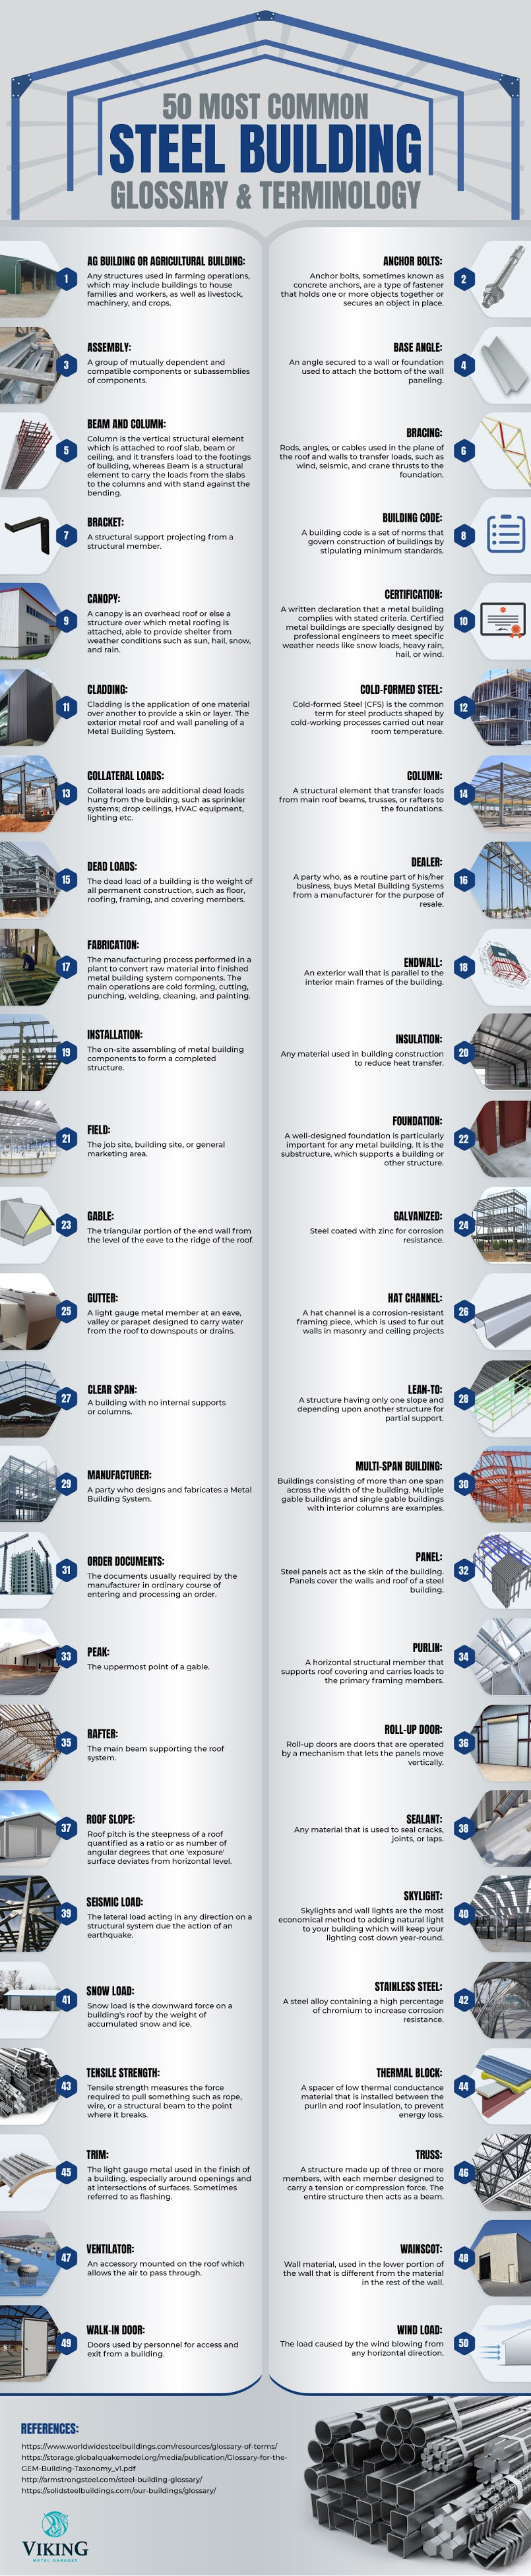 50 Most Common Steel Building Glossary & Terminology #infographic #Construction #Technology